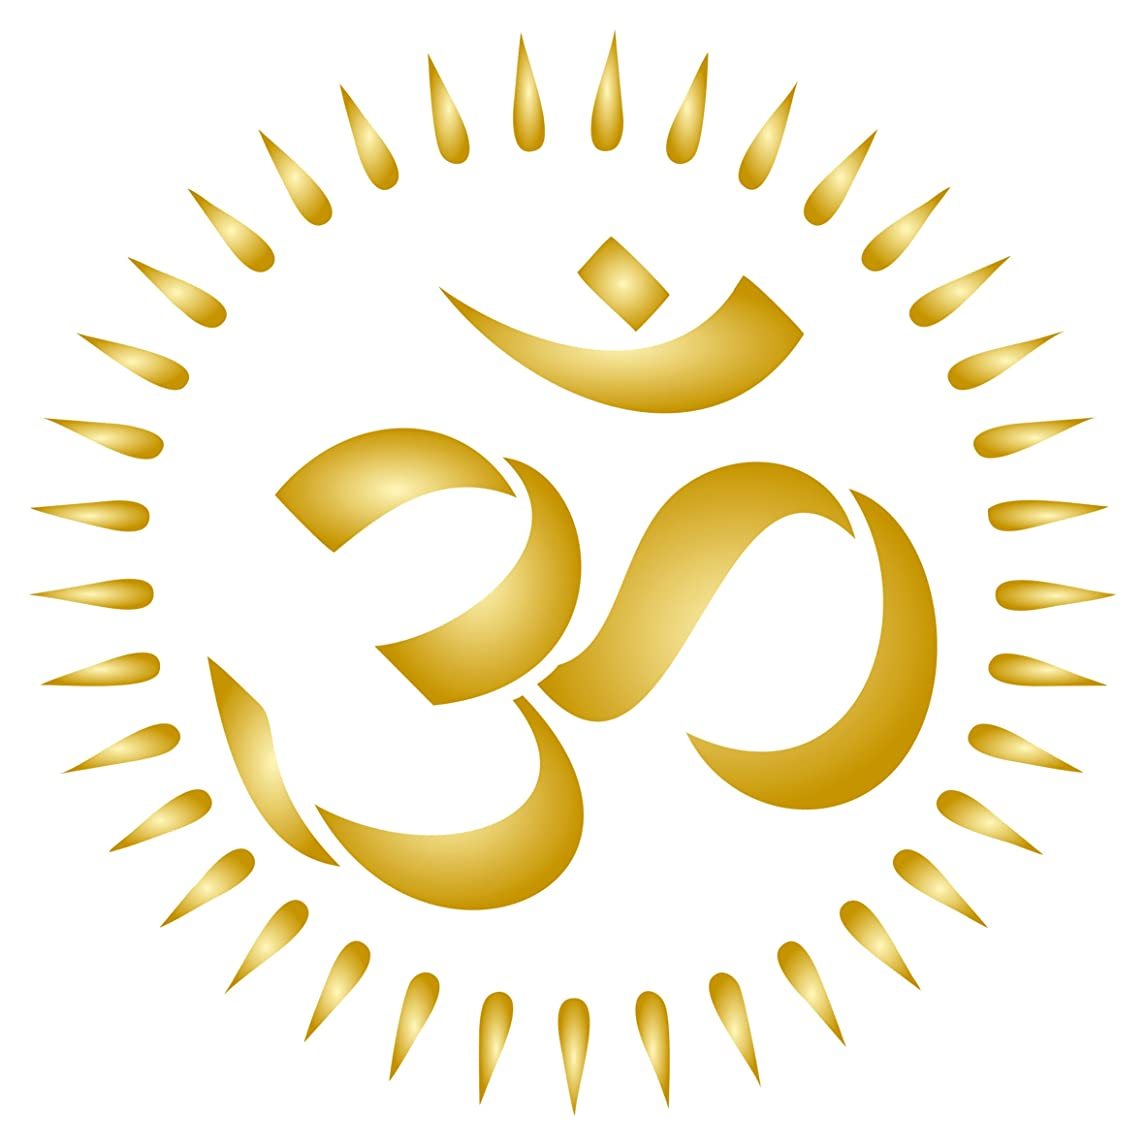 OM Stencil - 3.25 x 3.25 inch (S) - Reusable AUM Indian Mantra Sanskrit Hindu Spiritual Stencils for Painting - Use on Paper Projects Walls Floors Fabric Furniture Glass Wood etc.